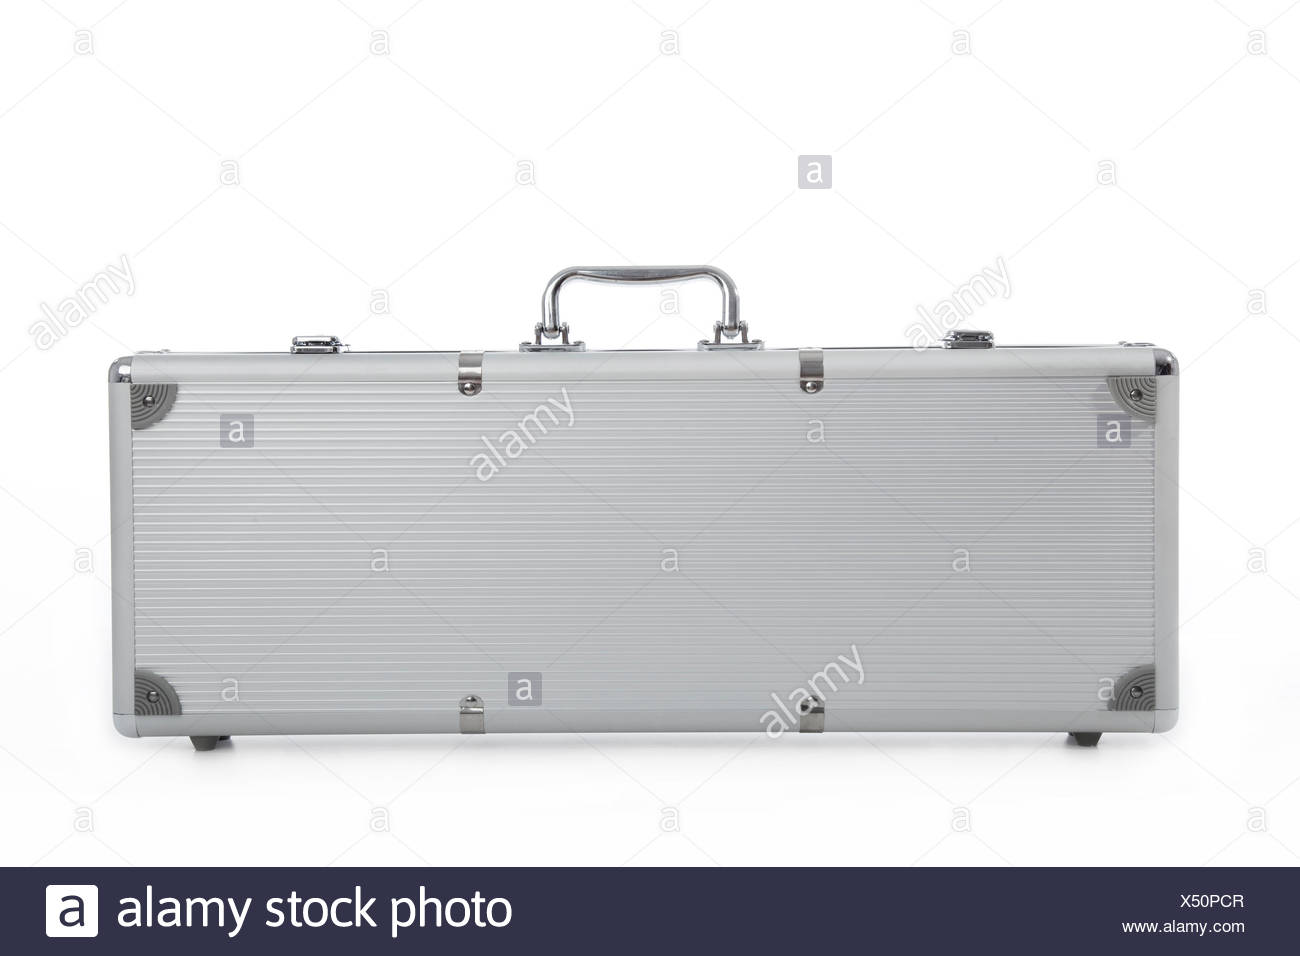 Cutout of a metal secure briefcase on white background - Stock Image